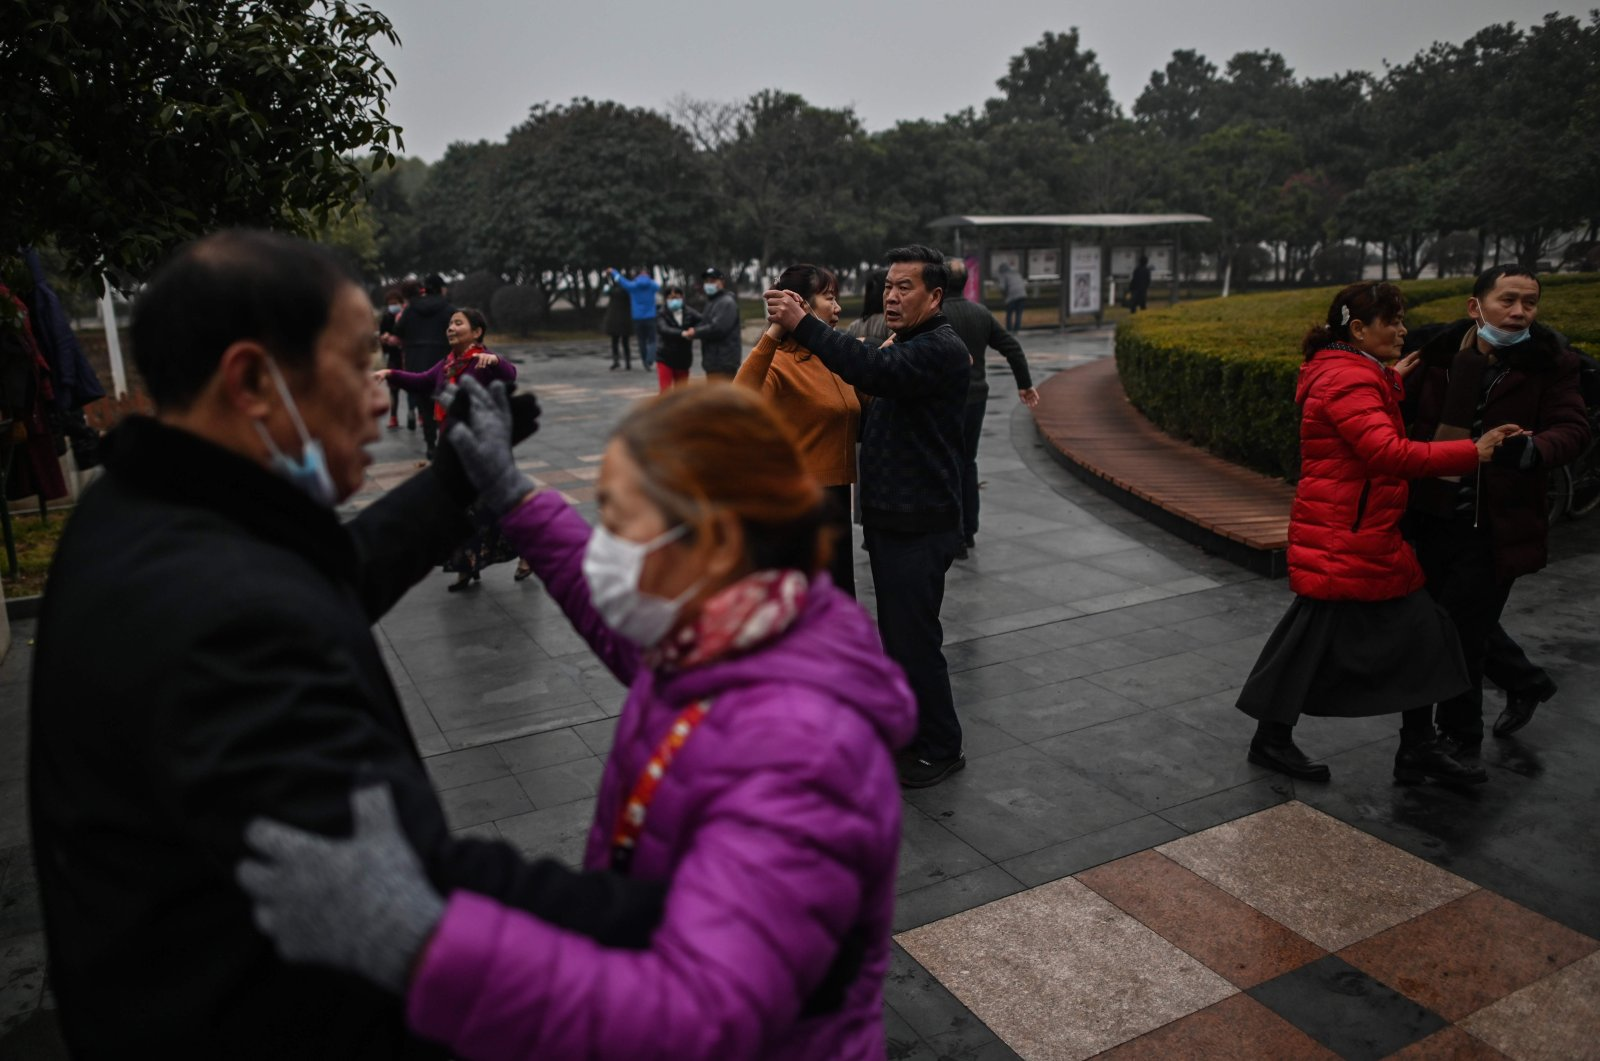 People dance in a park in Wuhan, China, Jan. 23, 2021. (AFP Photo)